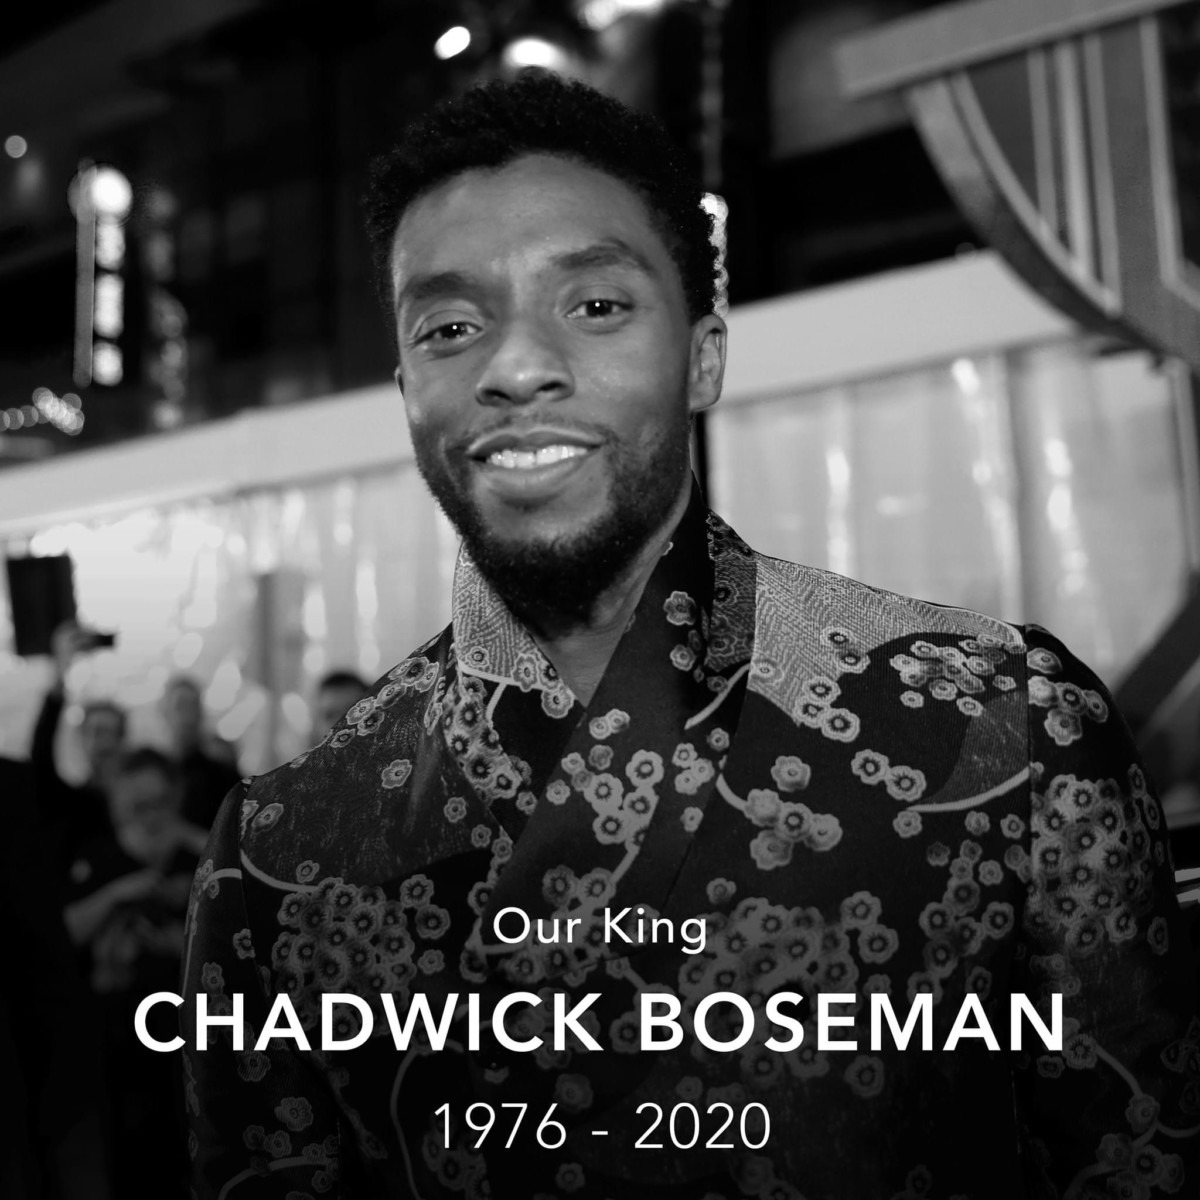 Tonight on ABC, Black Panther / Chadwick Boseman - A Tribute for a King 1